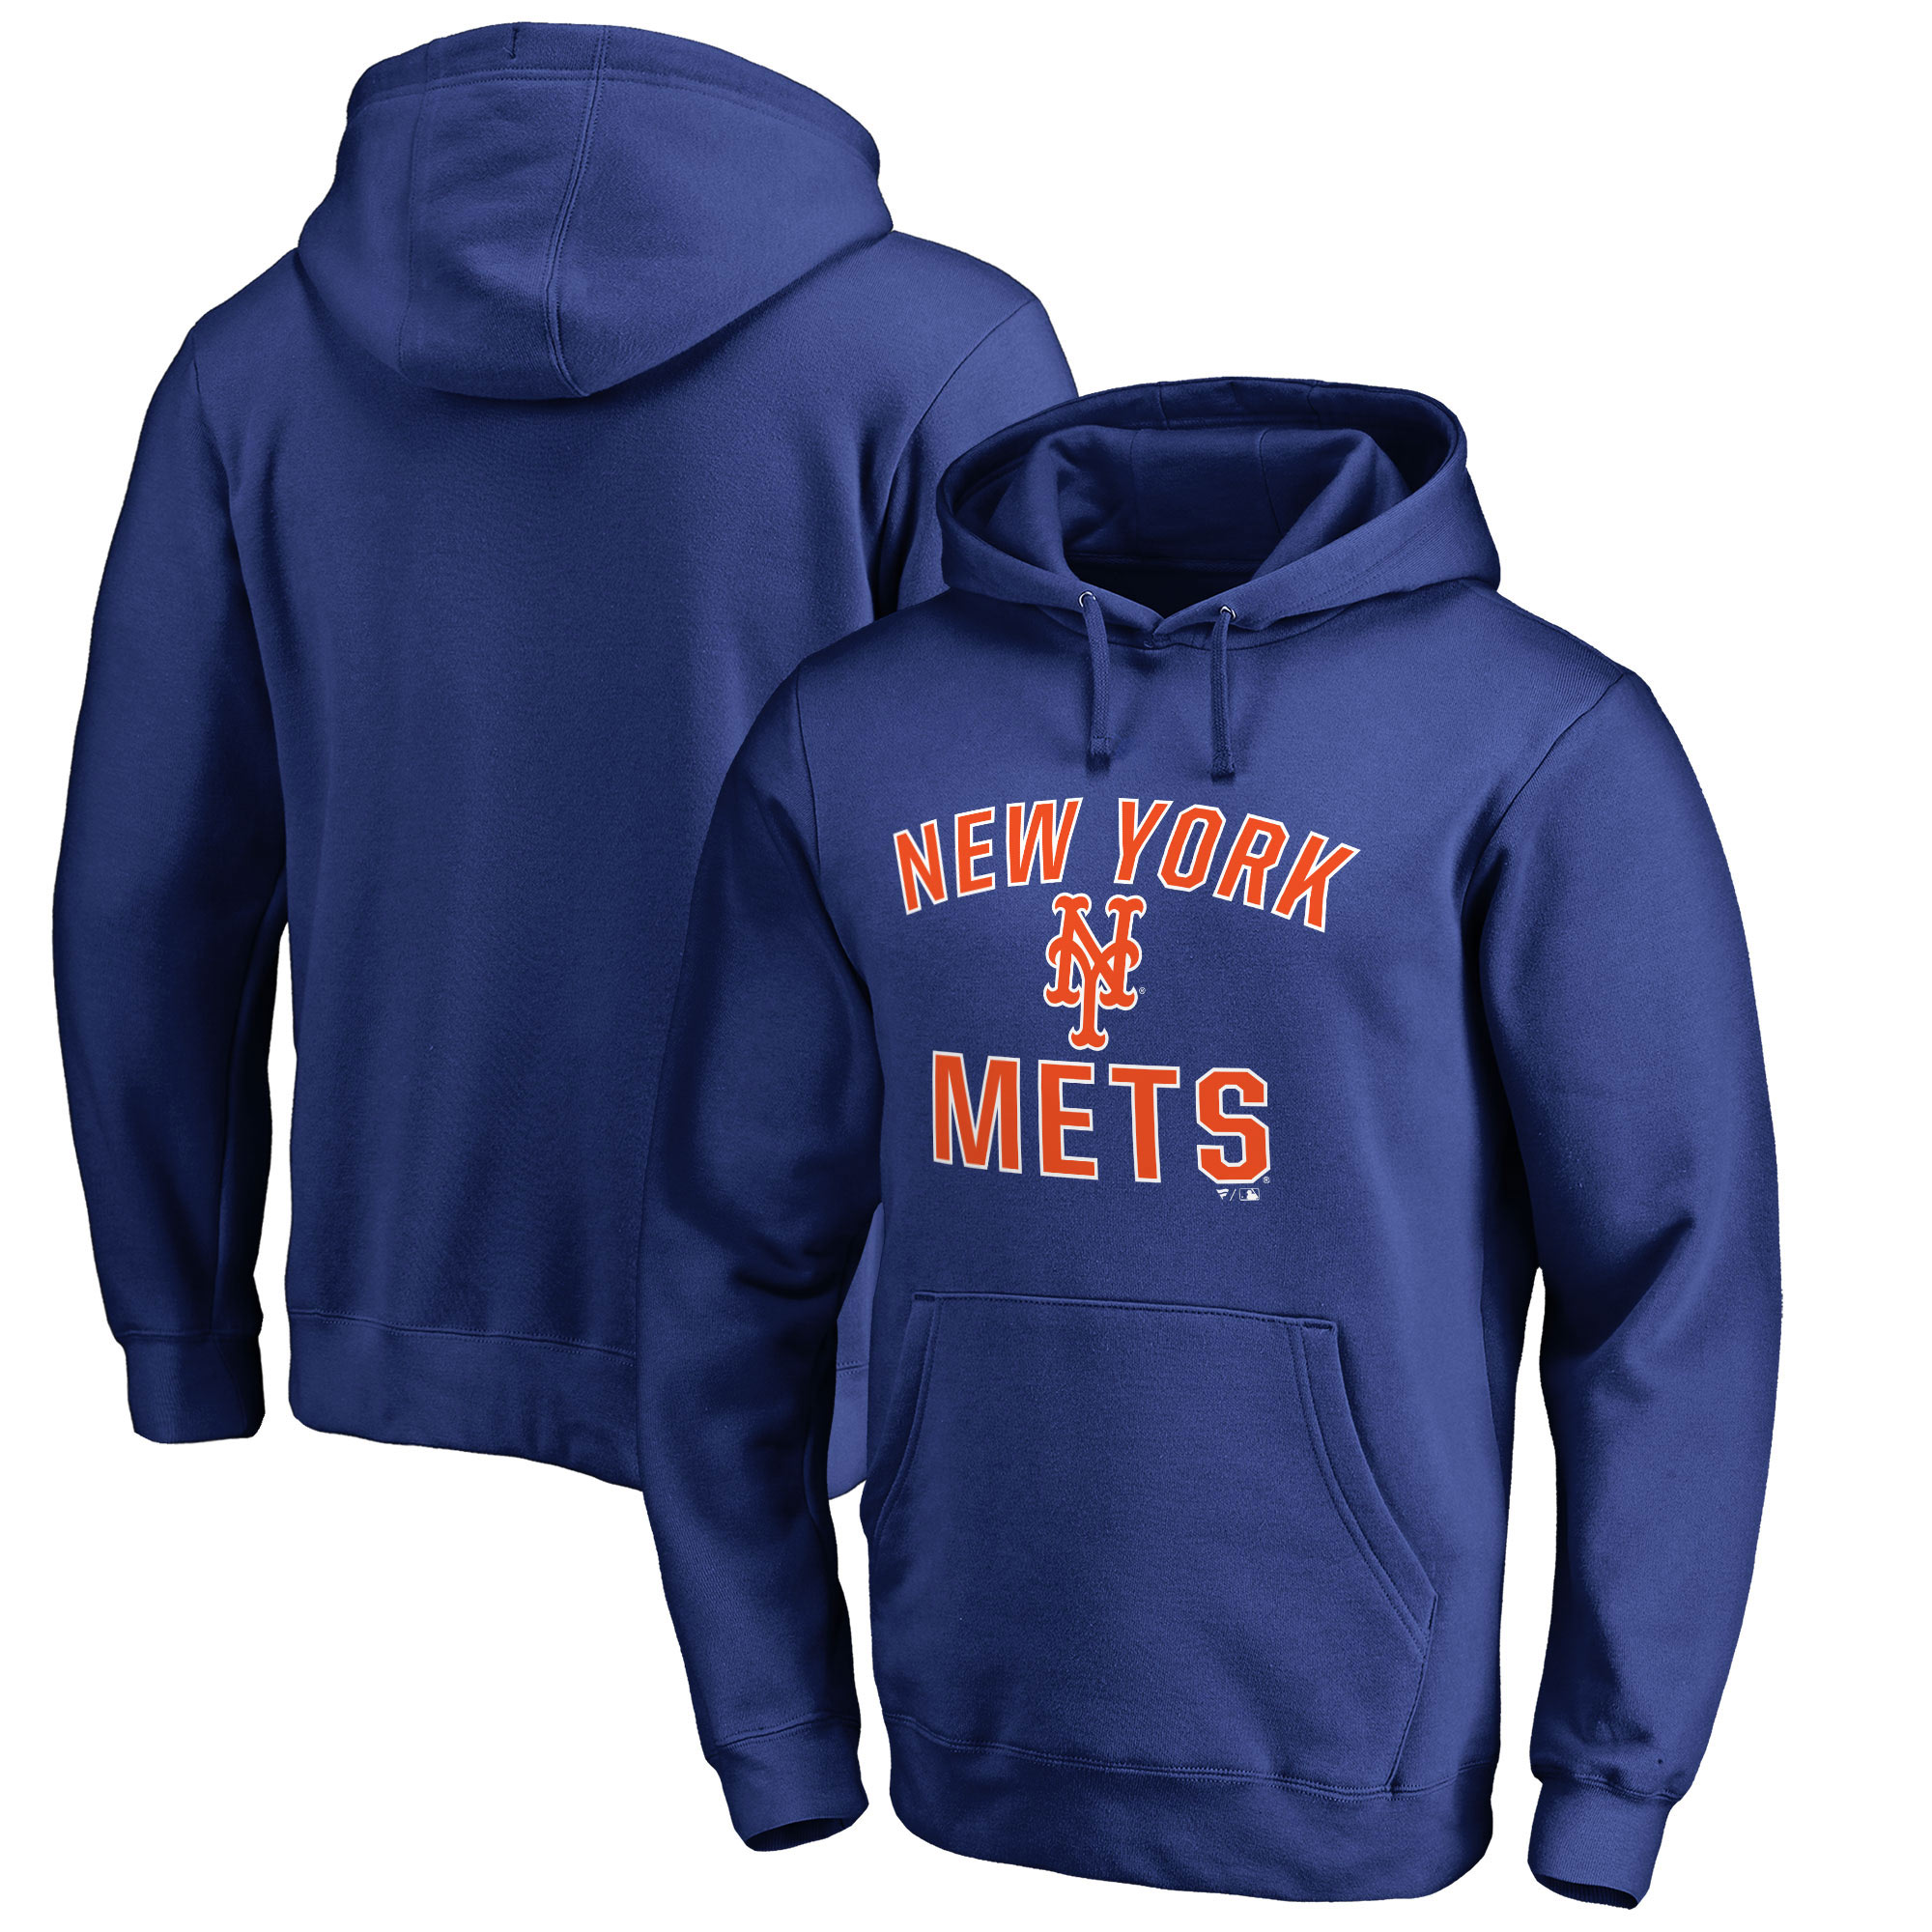 New York Mets Fanatics Branded Victory Arch Pullover Hoodie - Royal